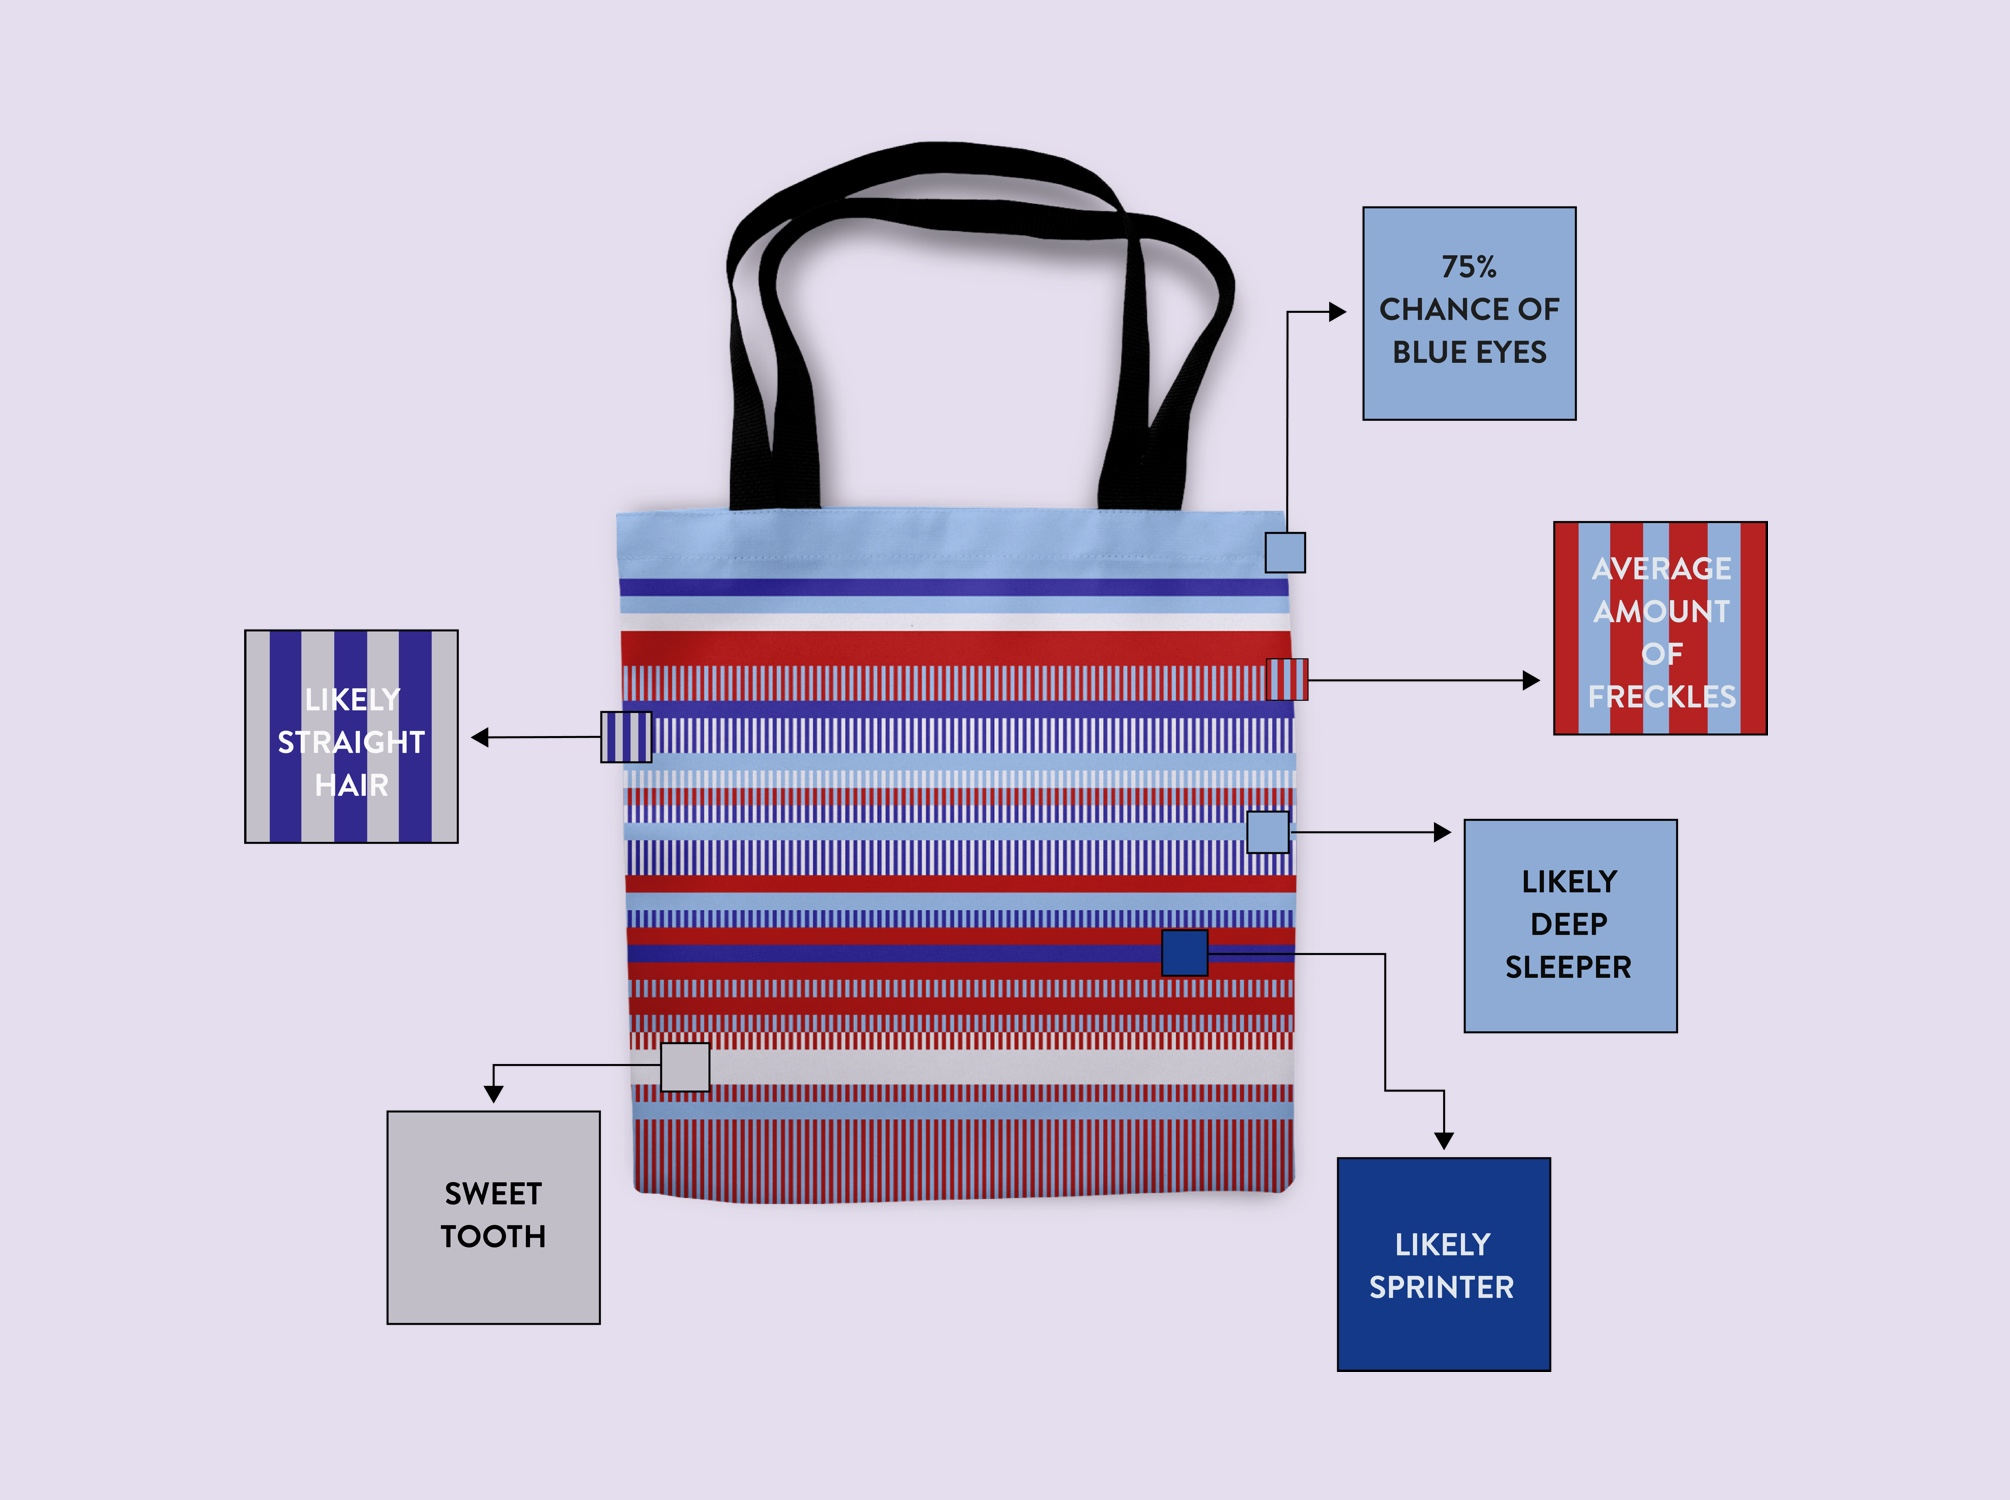 <p><strong>Uniquely yours</strong><br>Customize your tote by selecting a color to represent each of the four DNA bases. Patterns made from those colors represent your unique genetics.</p>